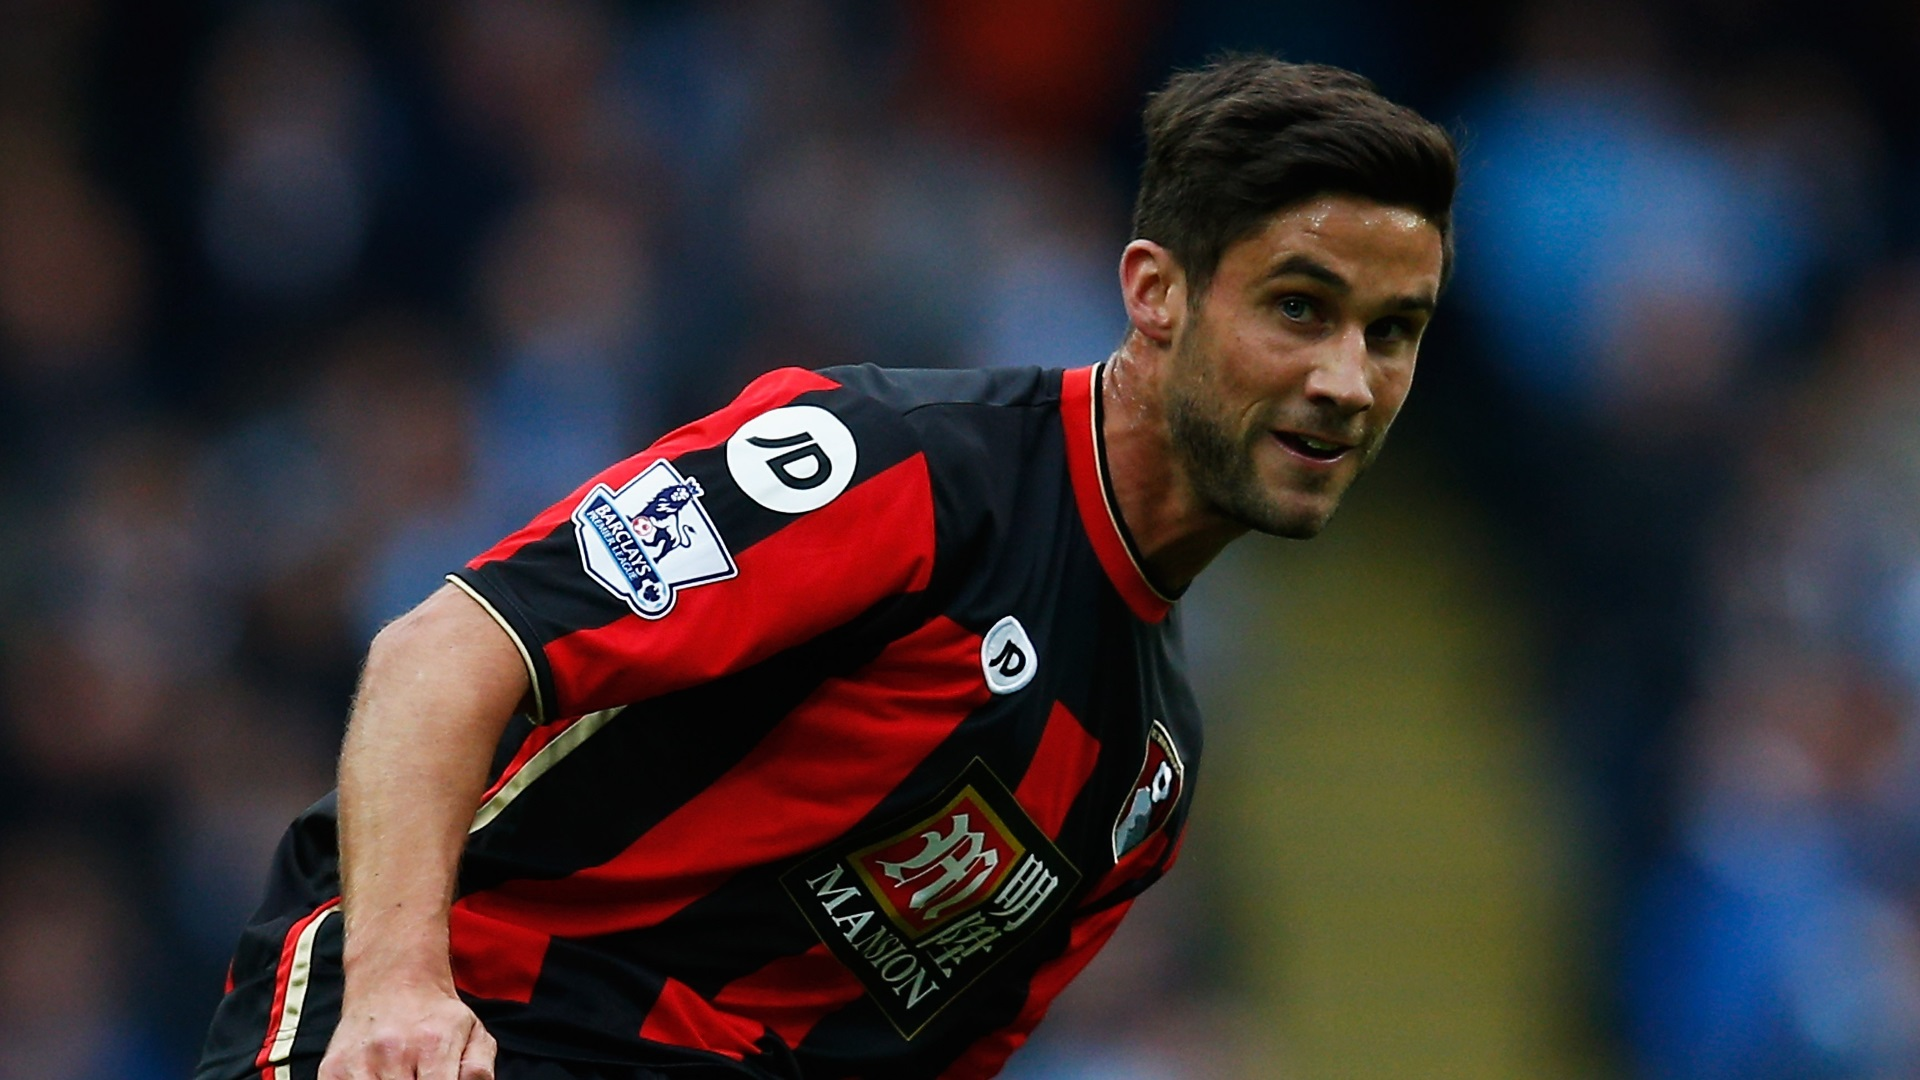 andrew surman of bournemouth   goal